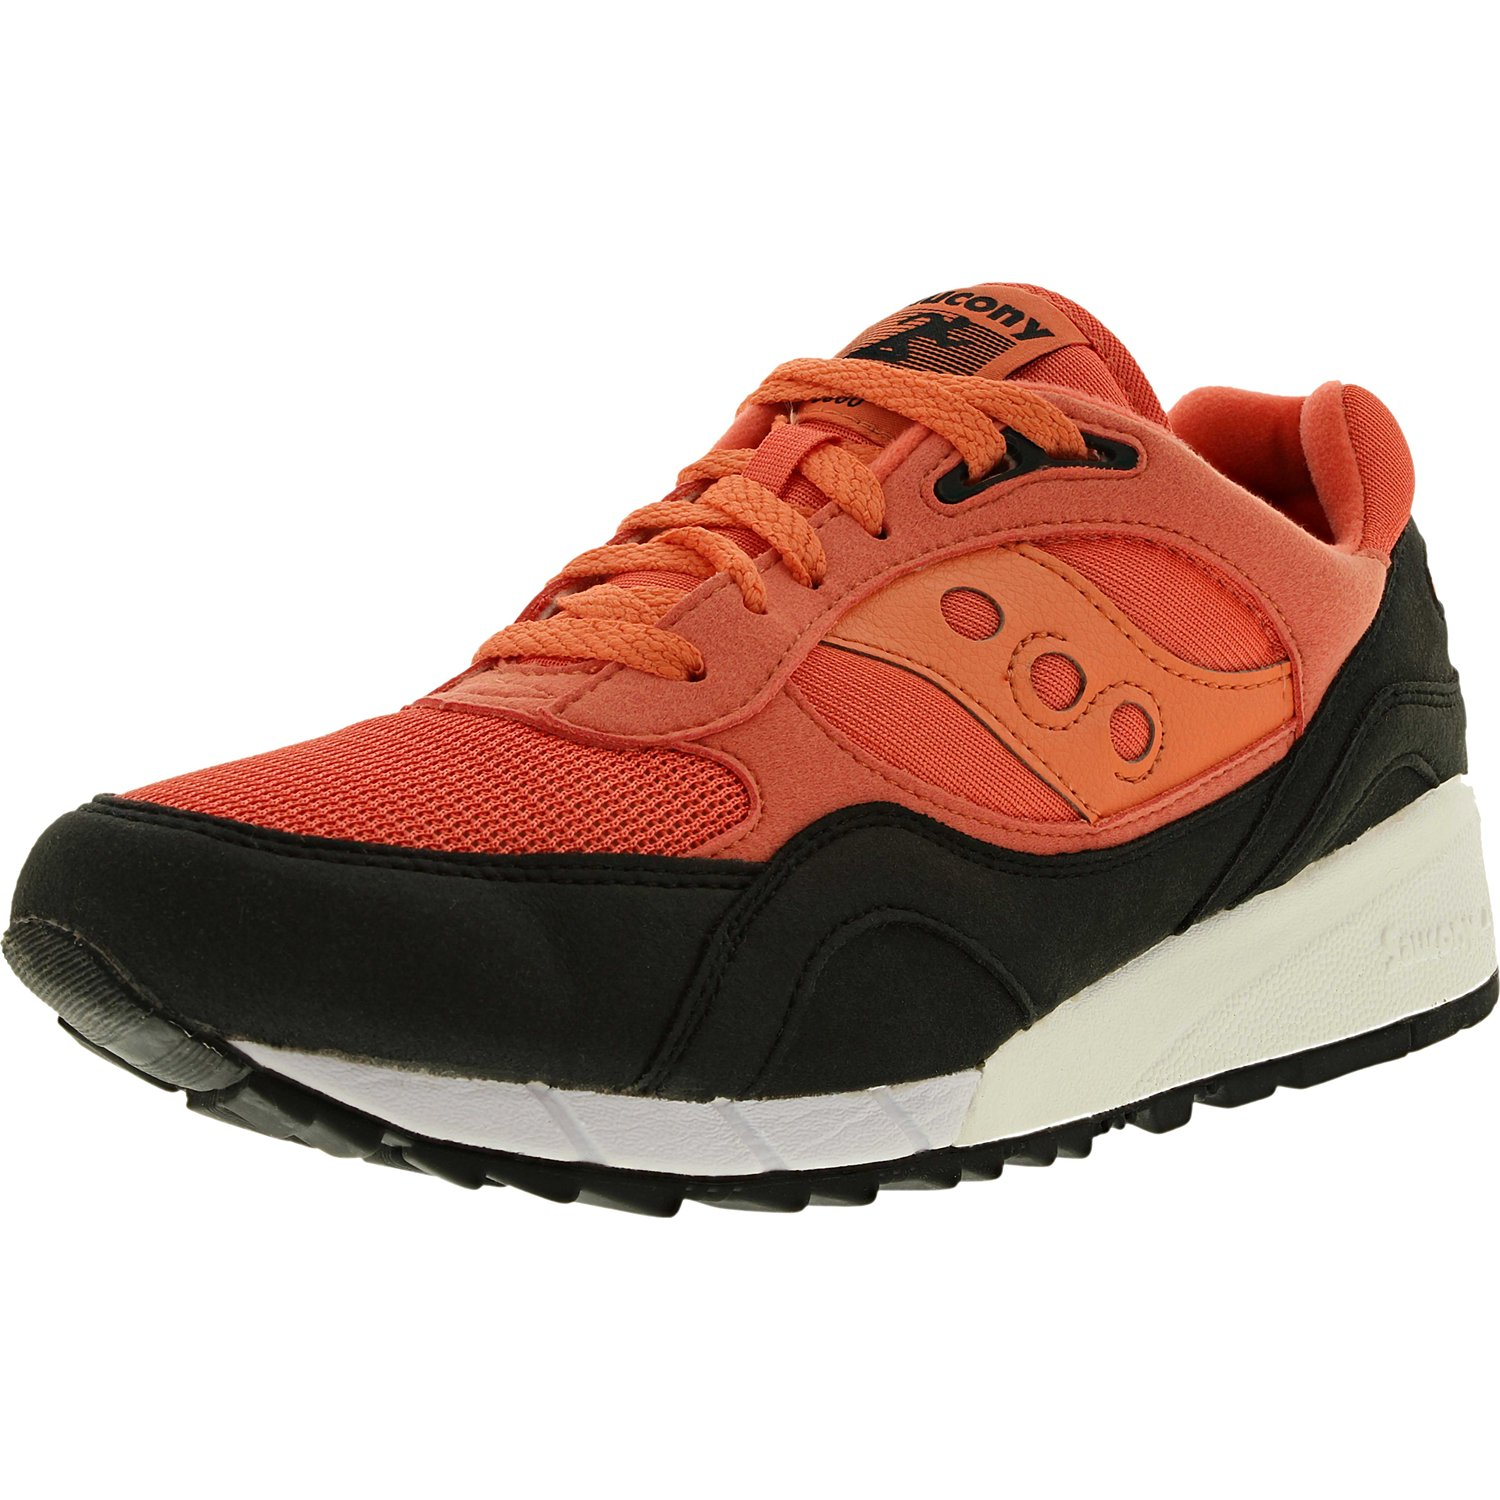 Saucony Men's Shadow 6000 Coral Black Ankle-High Fashion Sneaker 9M by Saucony